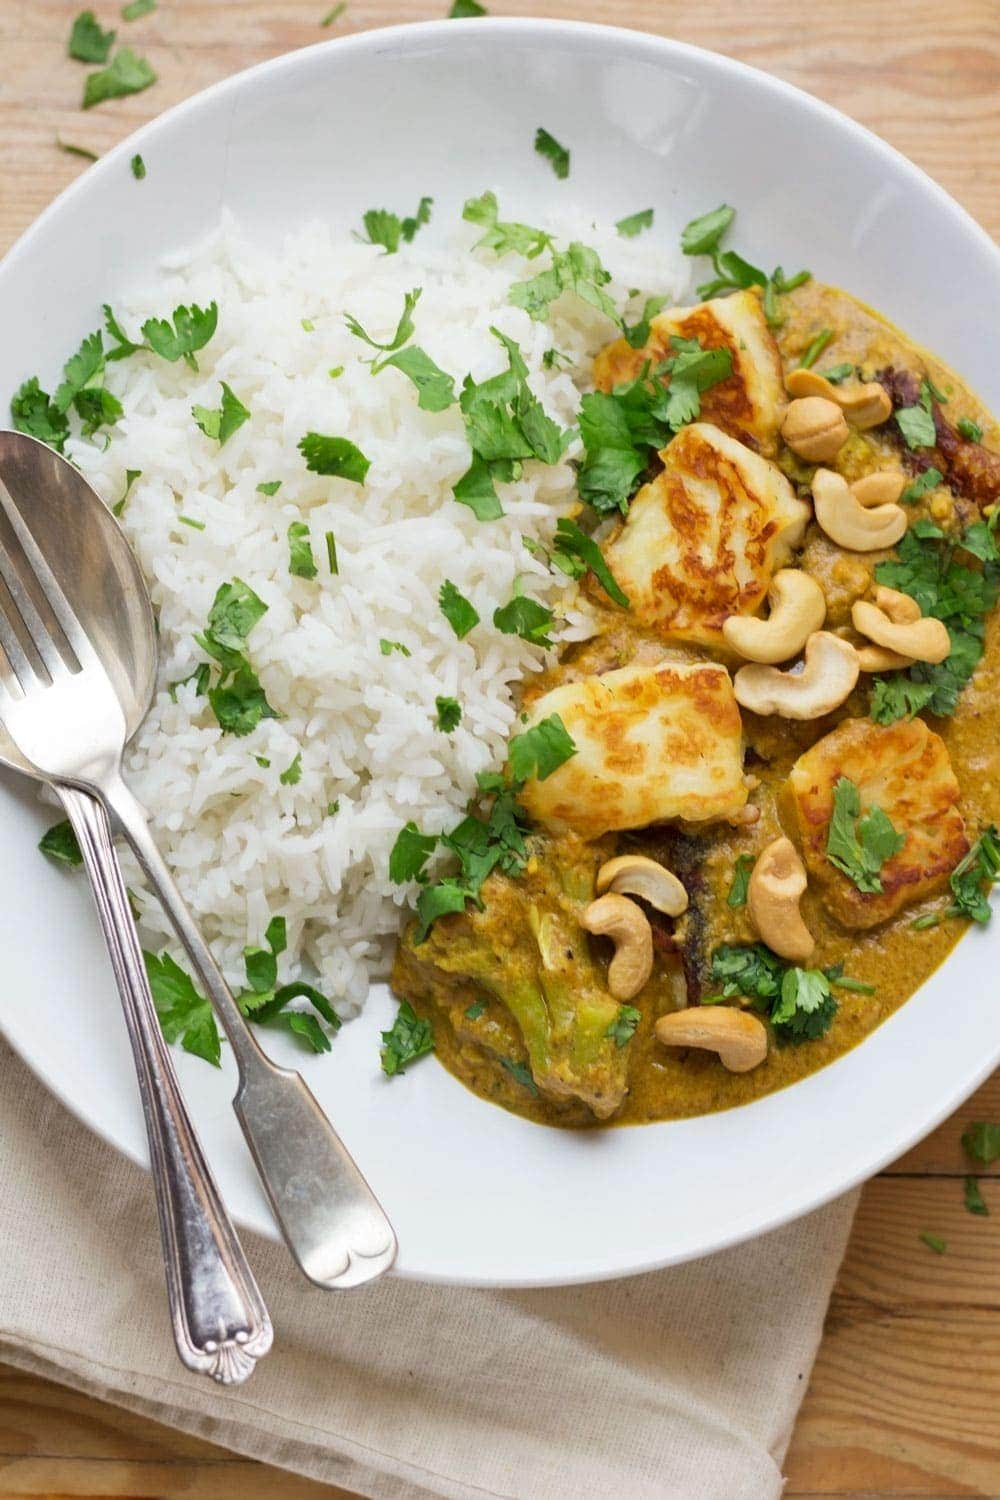 Cashew Nut Curry with Halloumi and Broccoli • The Cook Report